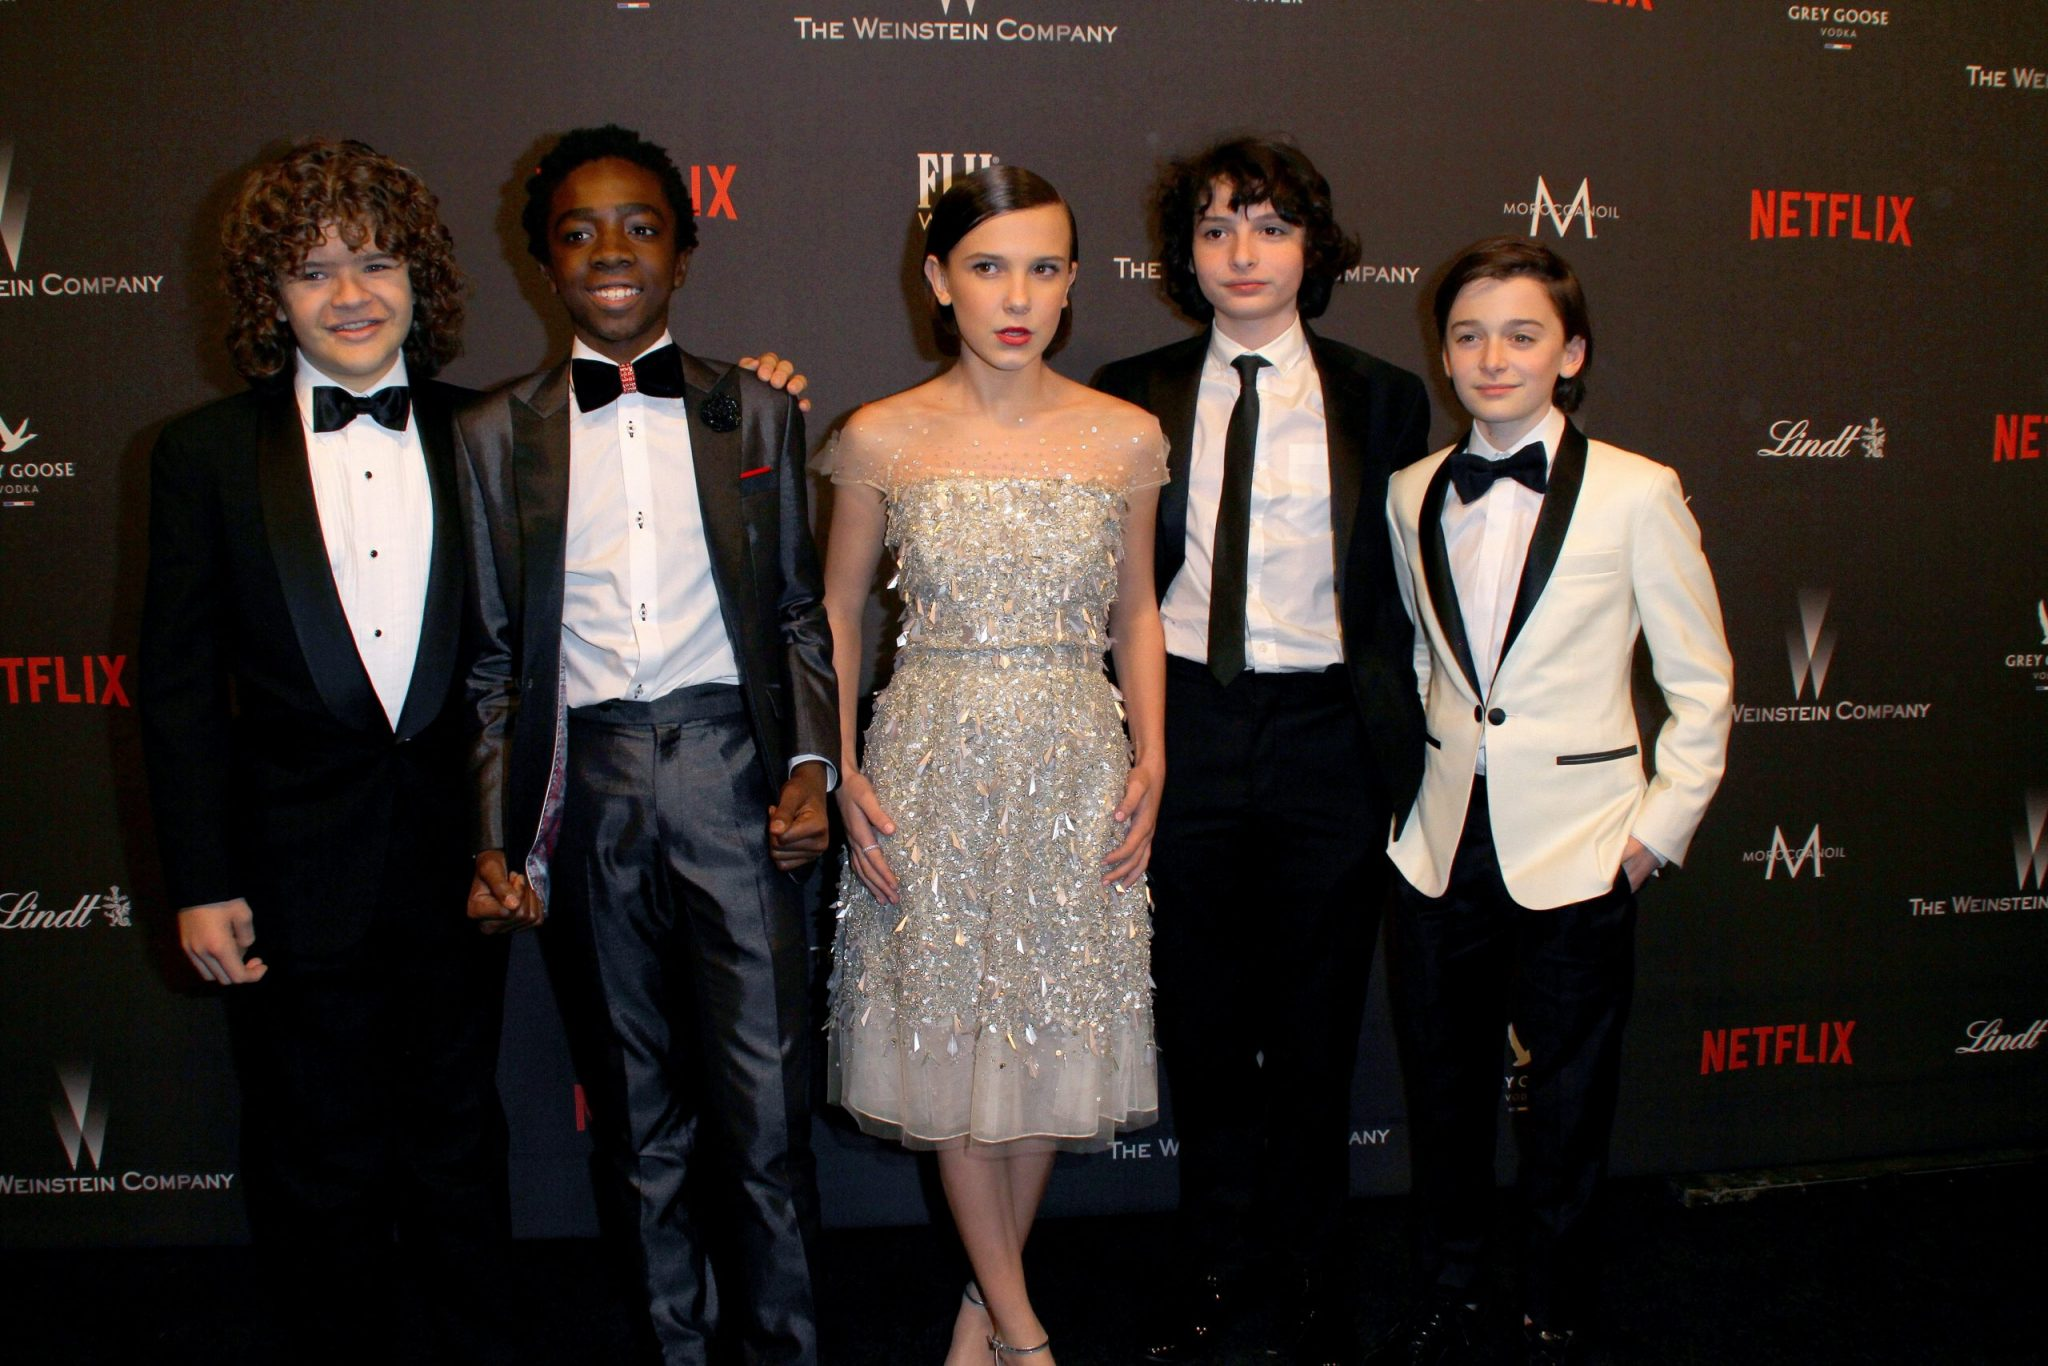 'Stranger Things' season 3 details are trickling out